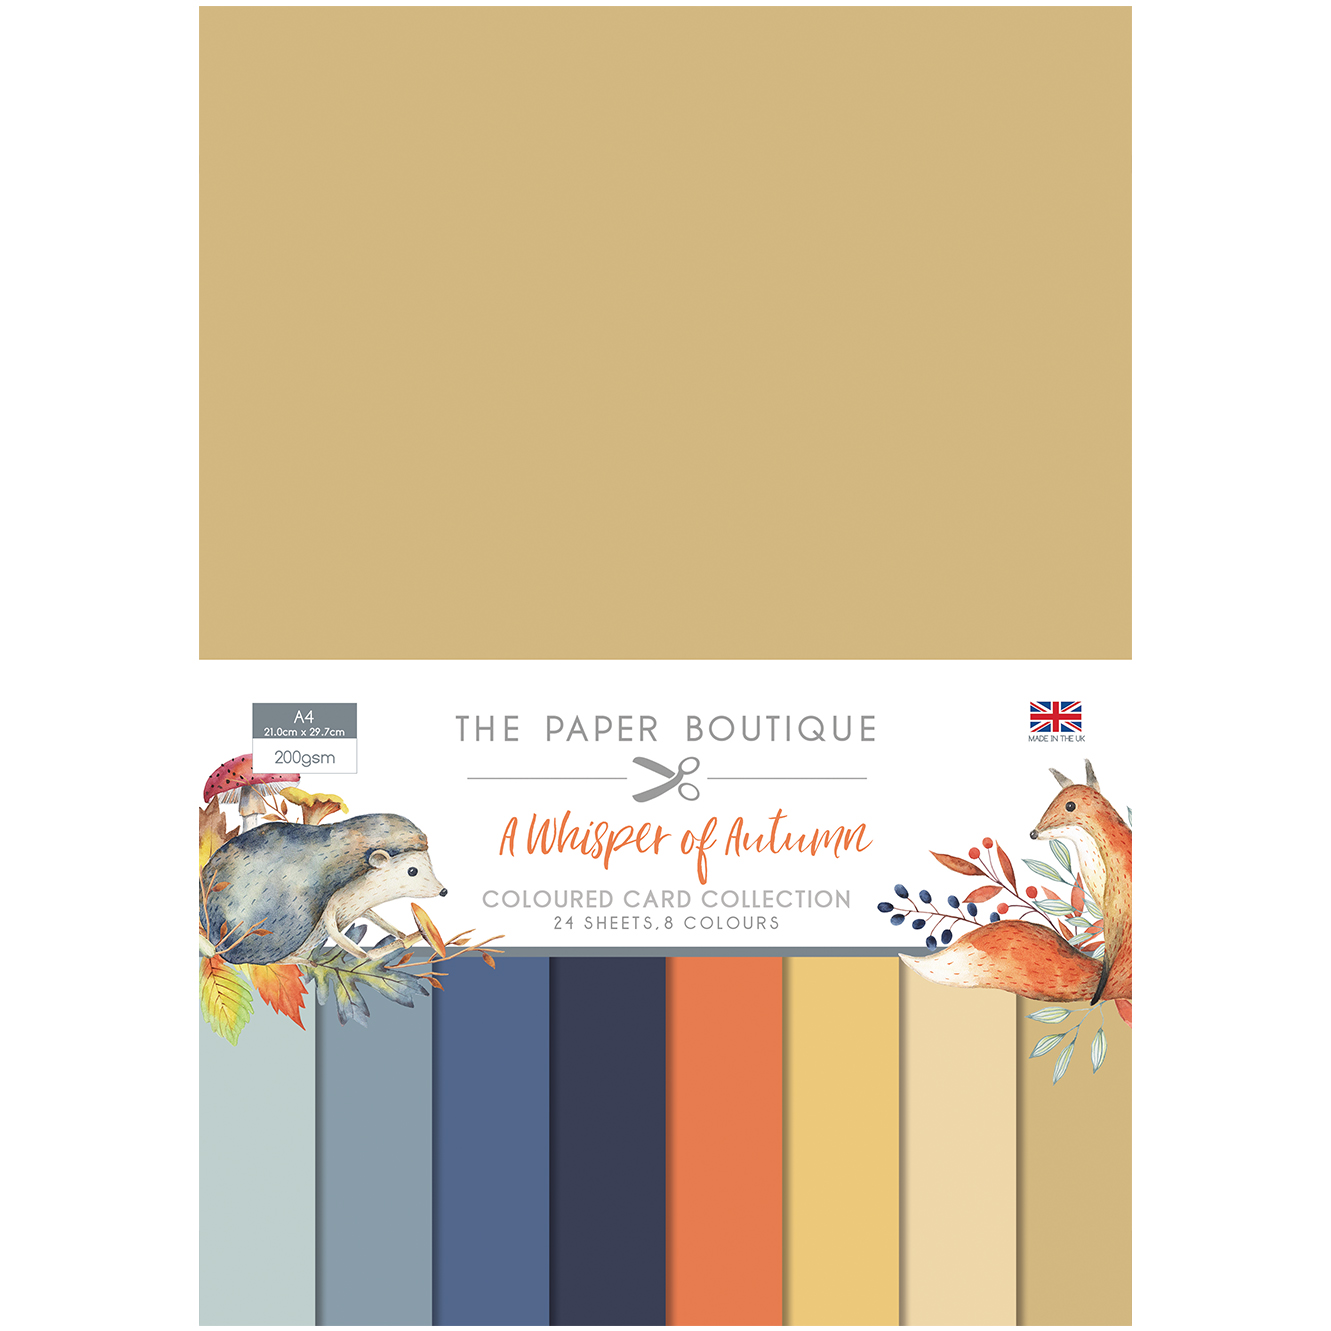 The Paper Boutique A Whisper of Autumn Coloured Card Collection